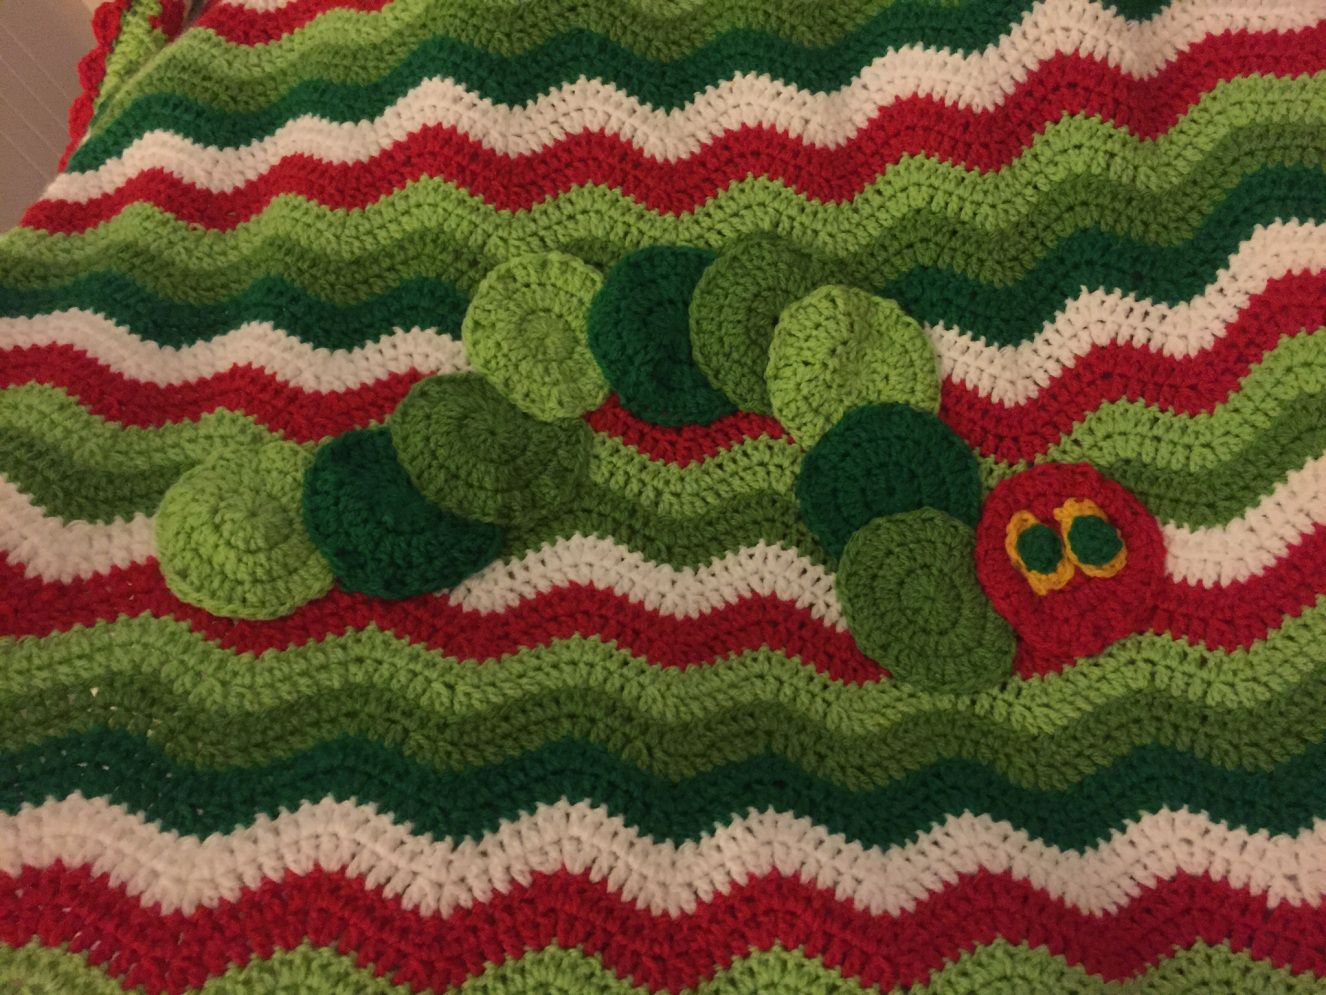 Pin by Jennie Deutsch on care to crochet? | Pinterest | Hungry ...